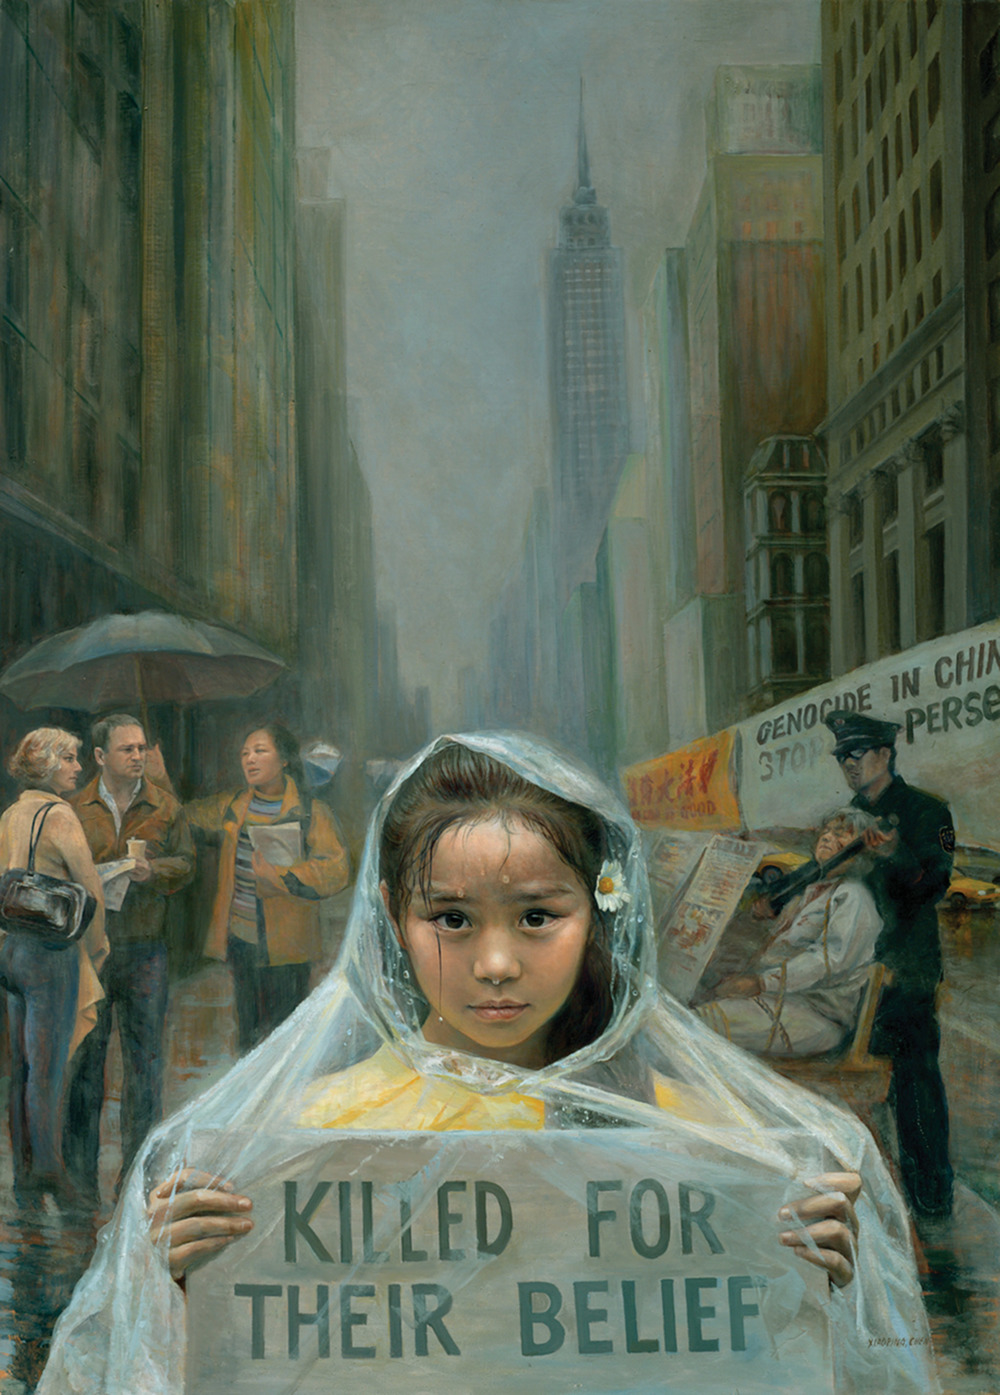 """""""Call of innocence,"""" 2005, by Xiaoping Chen, oil on canvas (26 × 36 inches). A young child awakens your conscience with her moral conviction to end the persecution of Falun Dafa pactitioners, whose organs are being harvested against their will in China."""